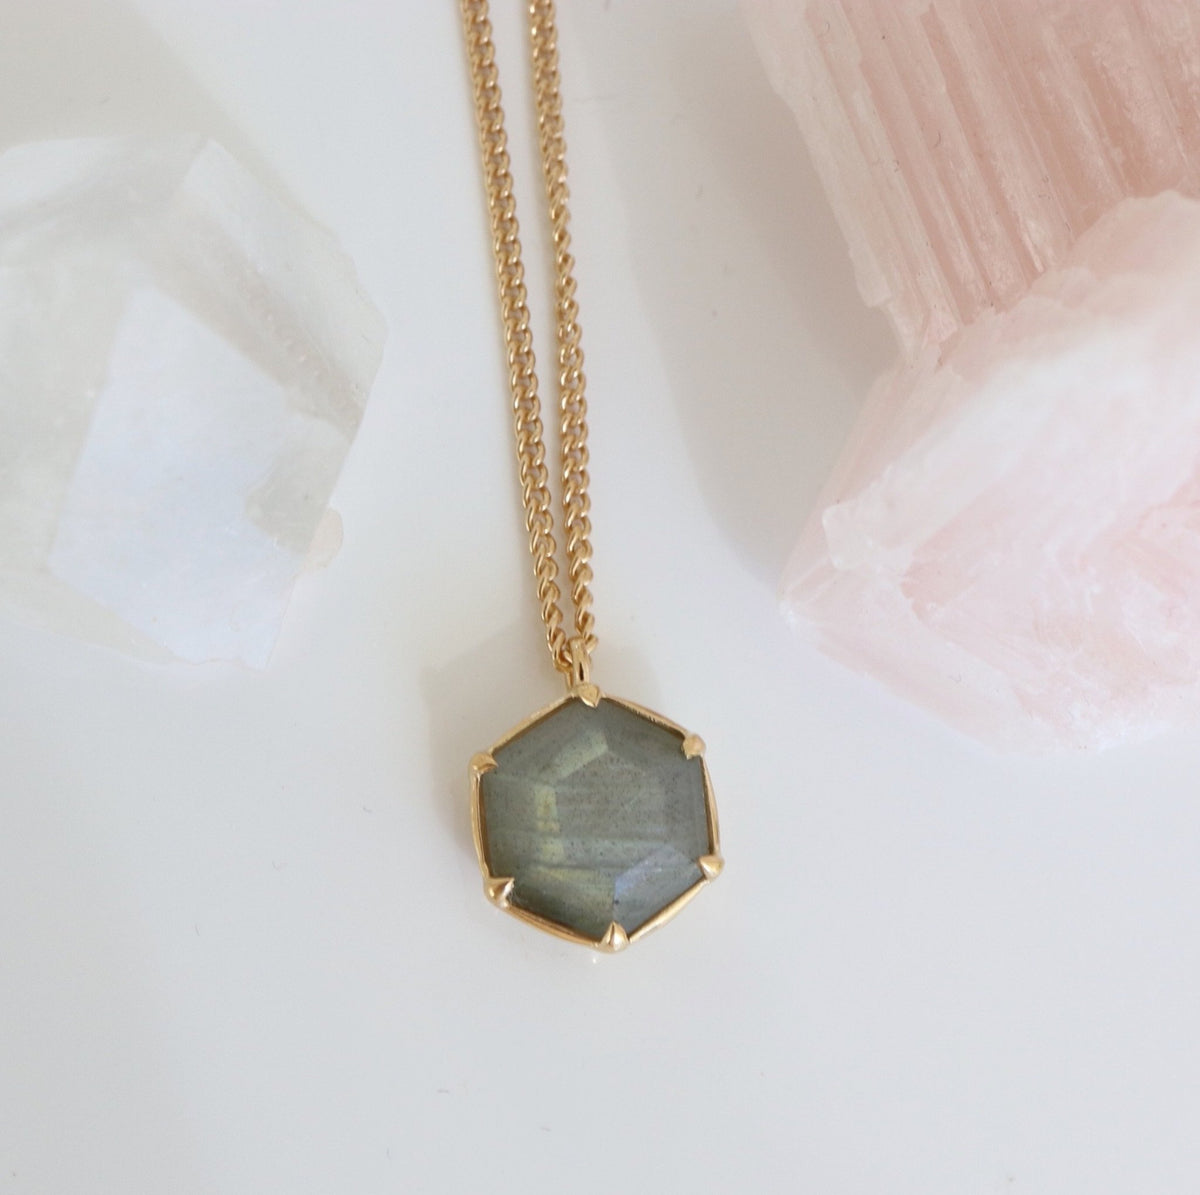 GRACE REVERSIBLE NECKLACE - LABRADORITE & GOLD - SO PRETTY CARA COTTER